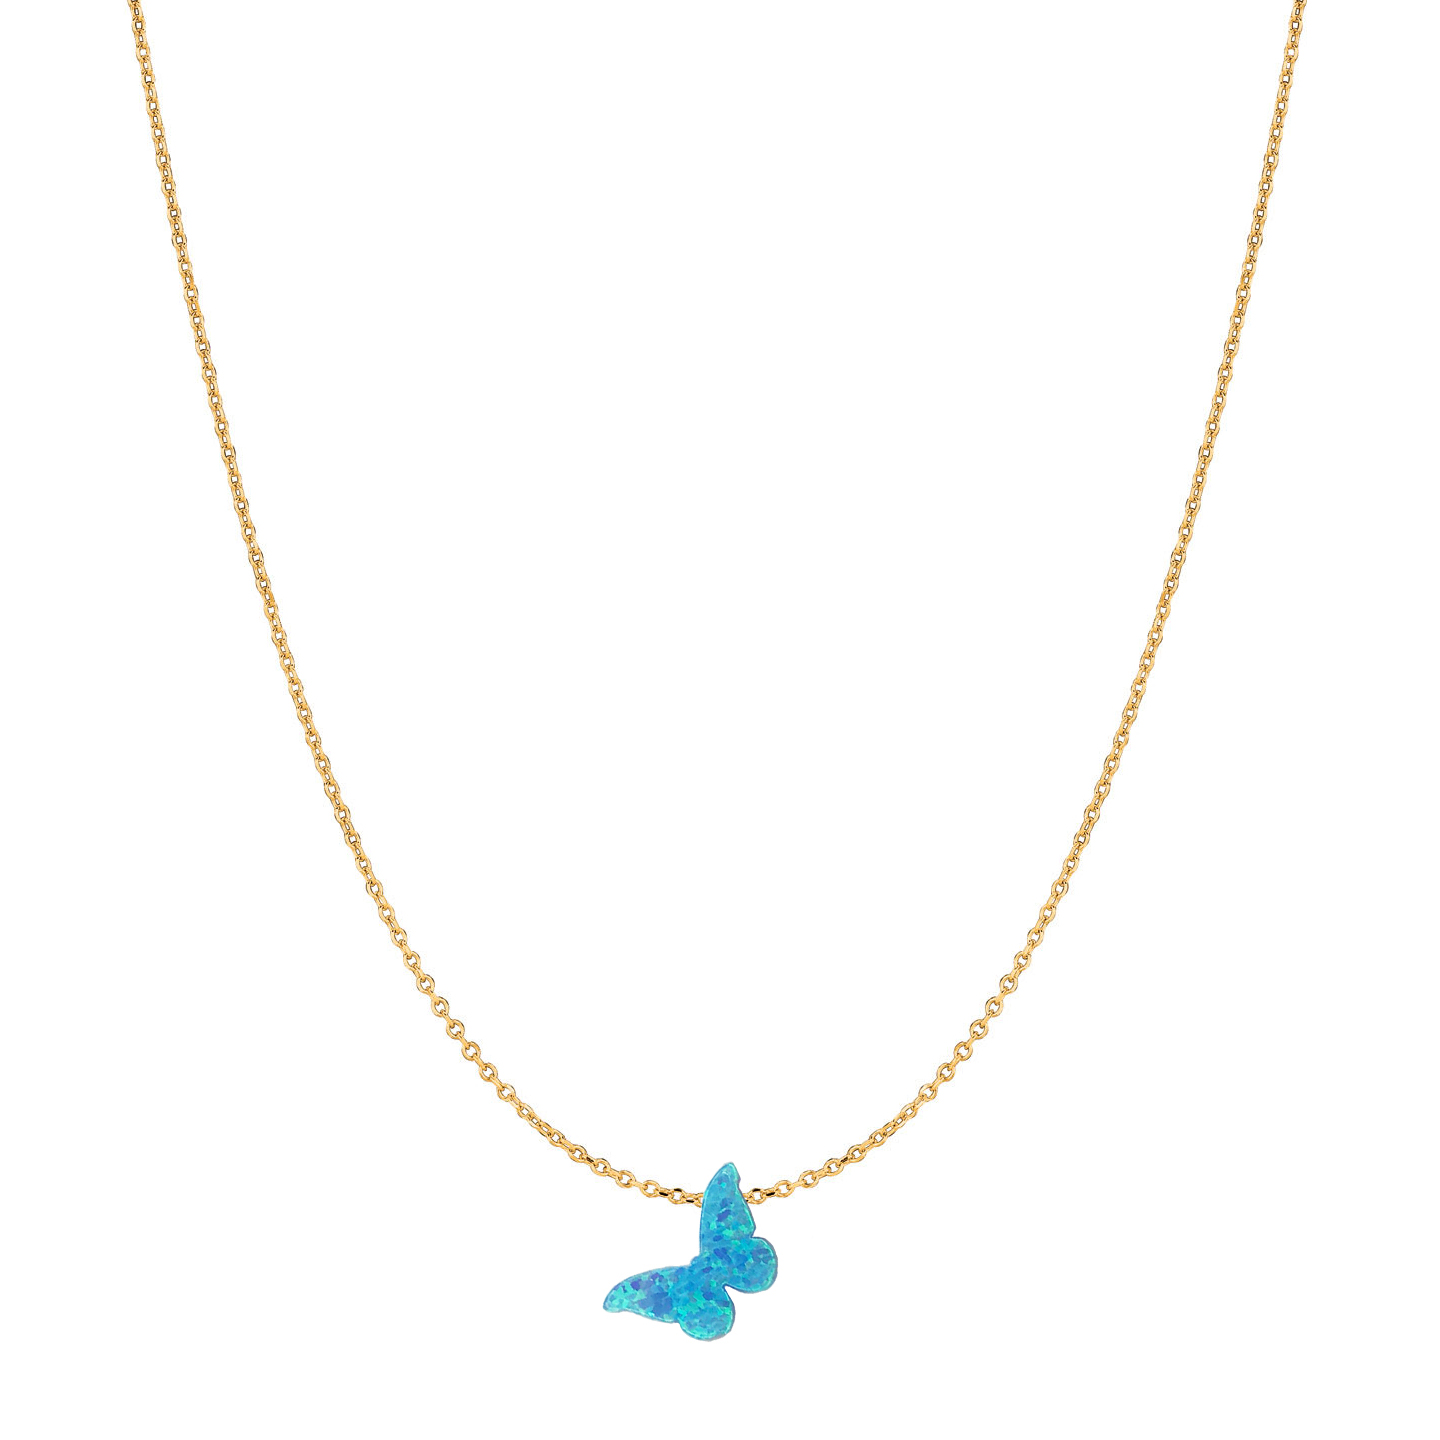 14 Karat Gold Bright Blue Slanted Butterfly Opal Necklace